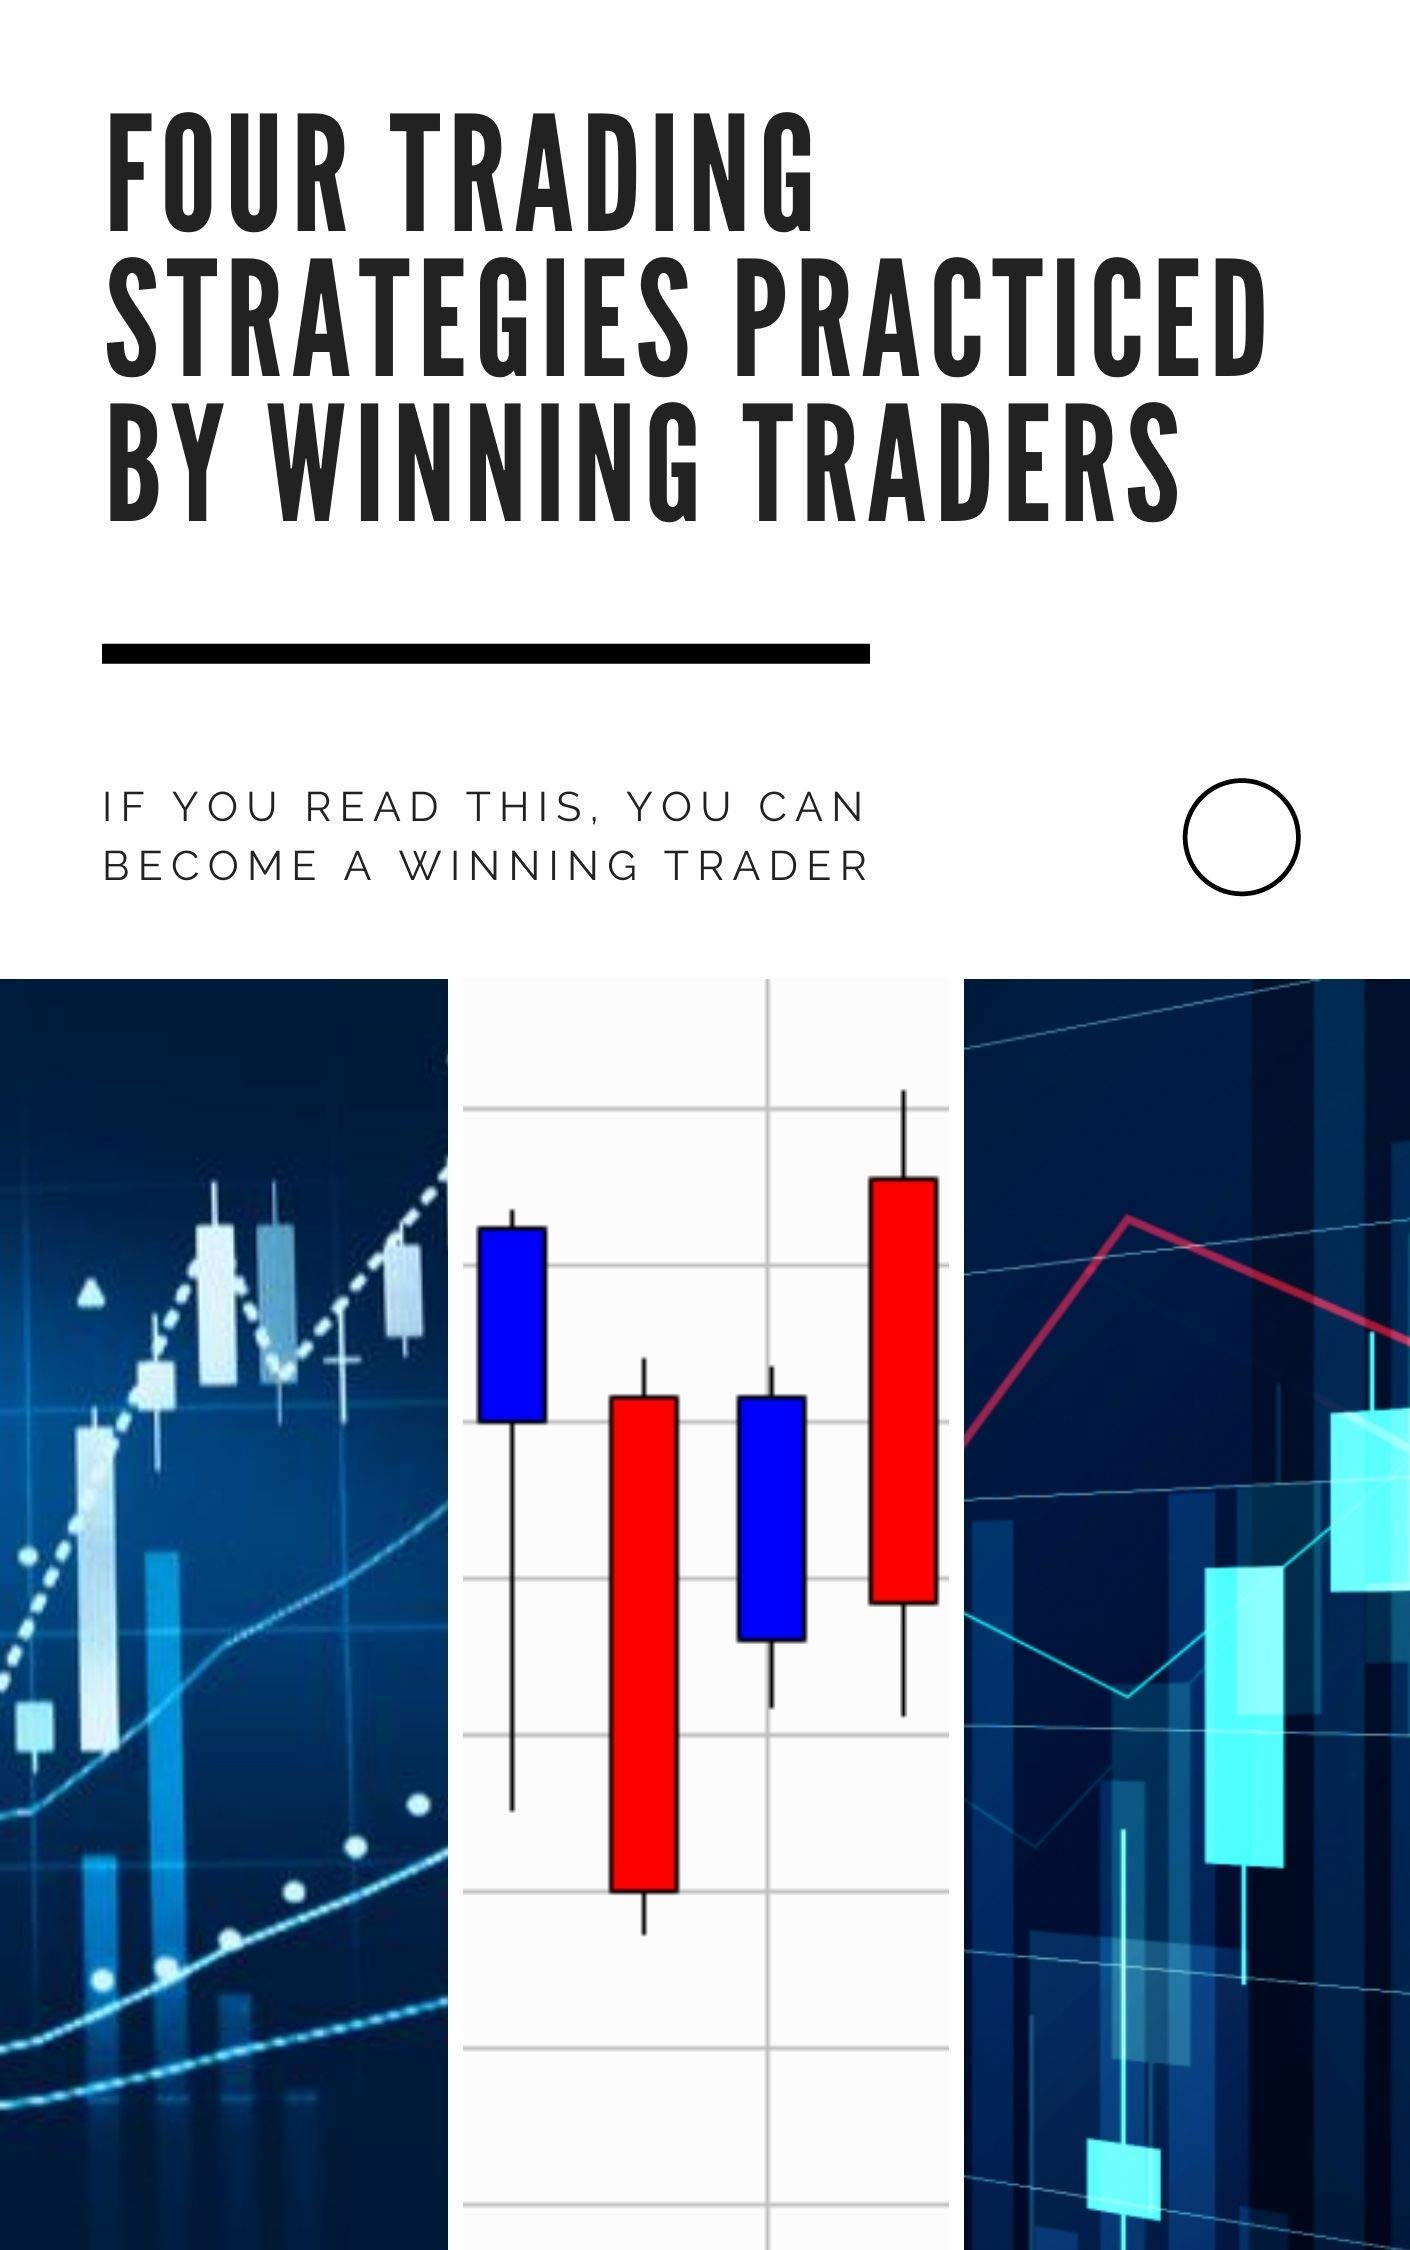 4 trading strategies practiced by winning traders